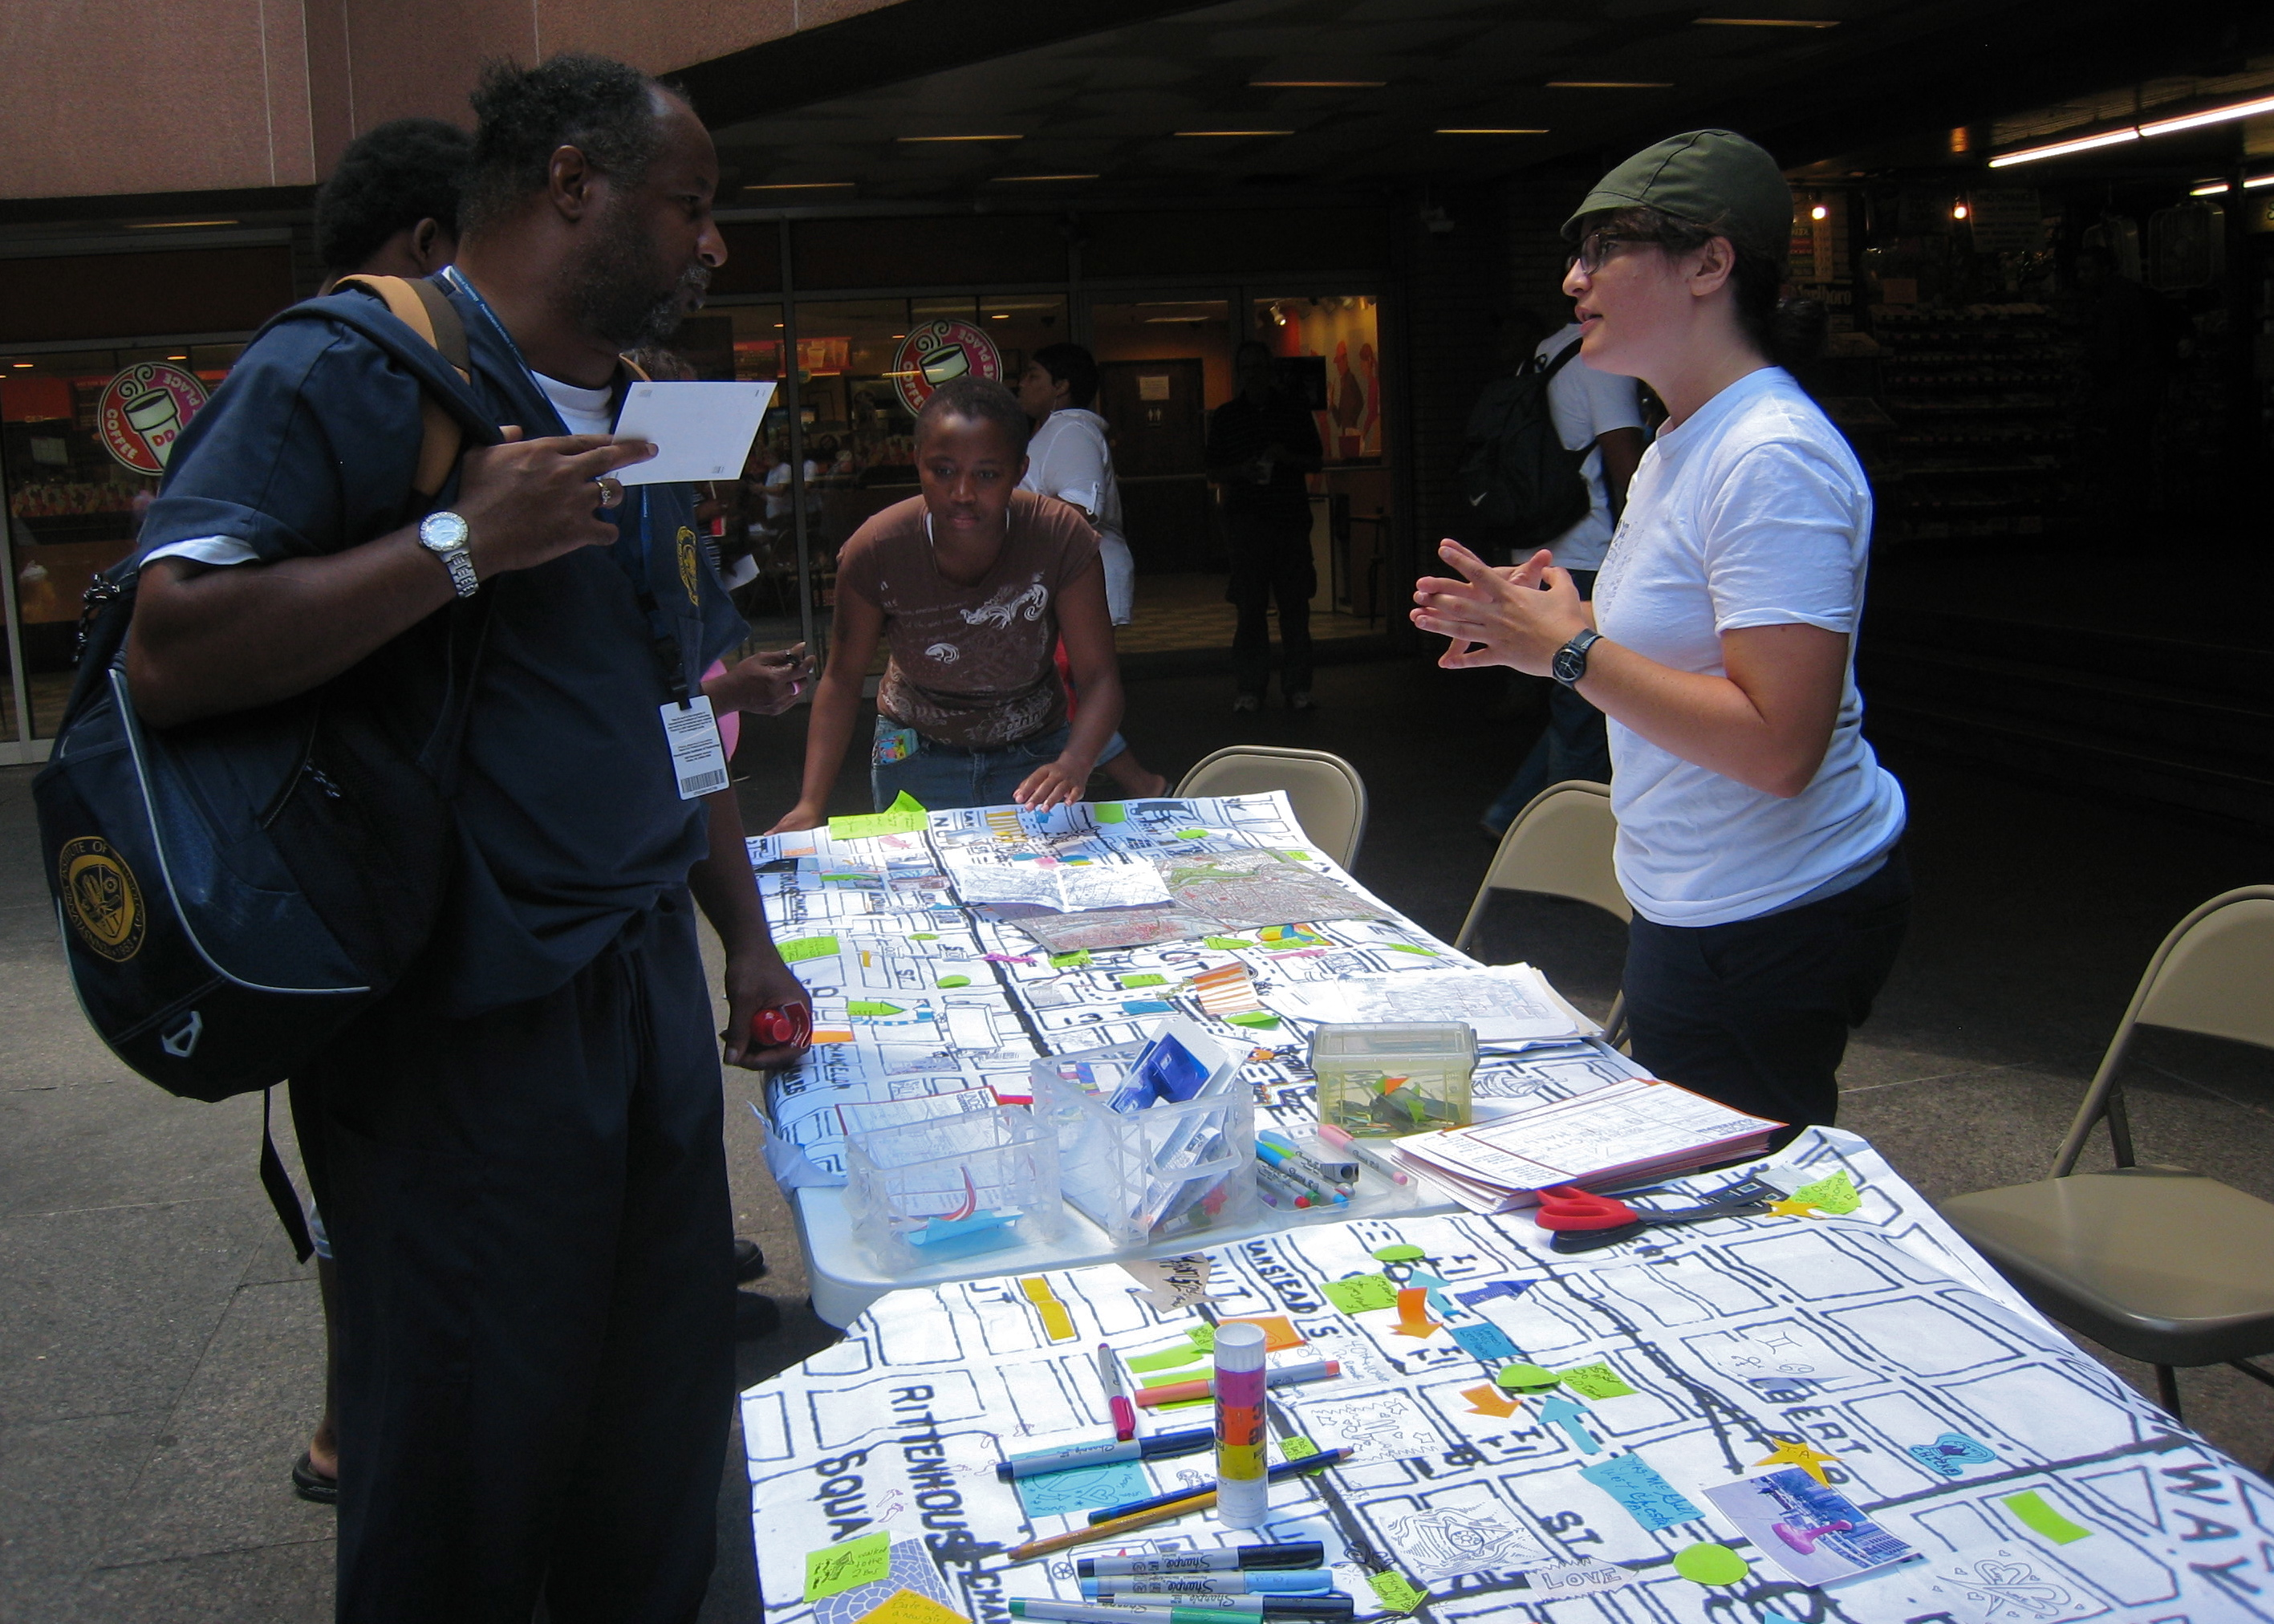 (Miriam Singer (right) talking to people passing through Centre Square's subway concourse entrance, asking them to add their routes and stories to the big map.)